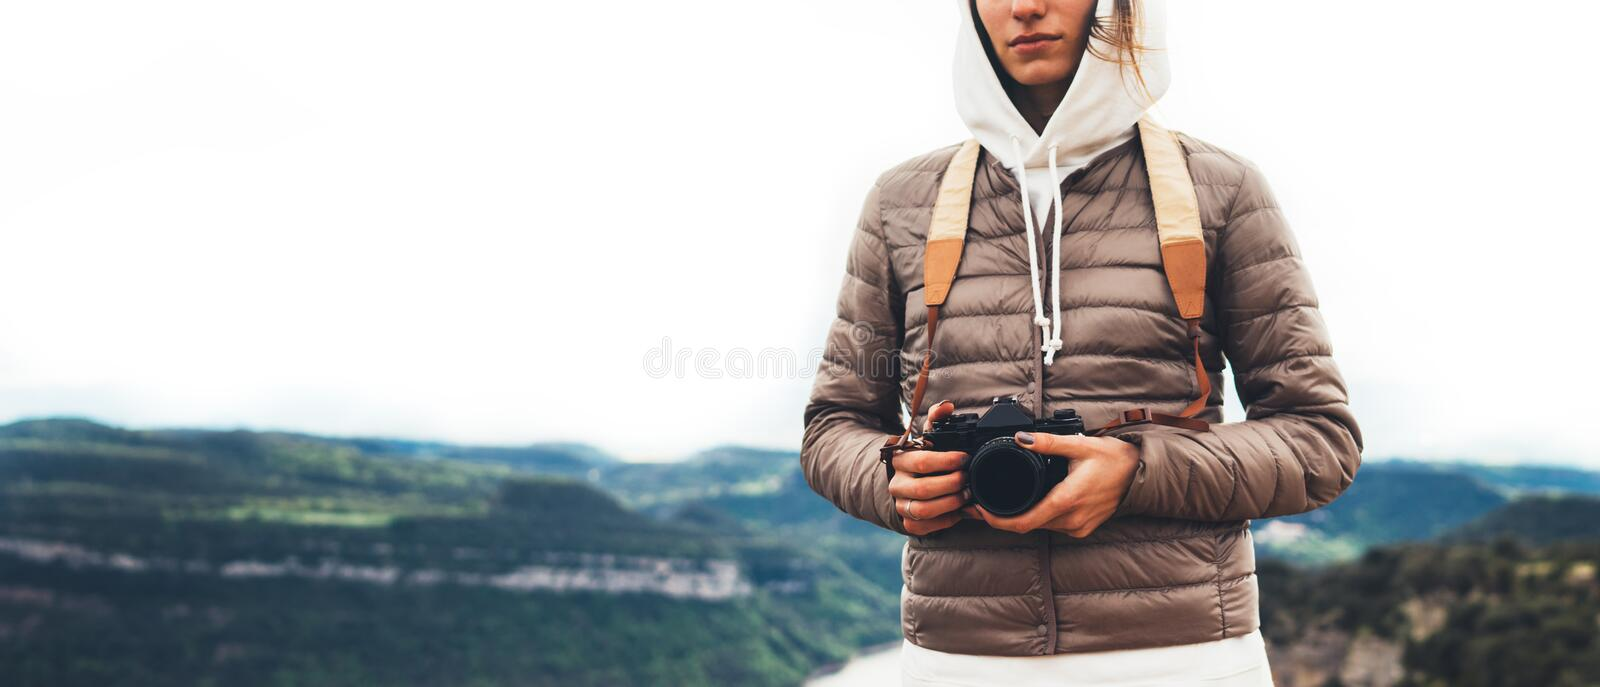 Photographer traveler on green top on mountain, tourist looking enjoy nature panoramic landscape in trip, girl holding in hands royalty free stock images